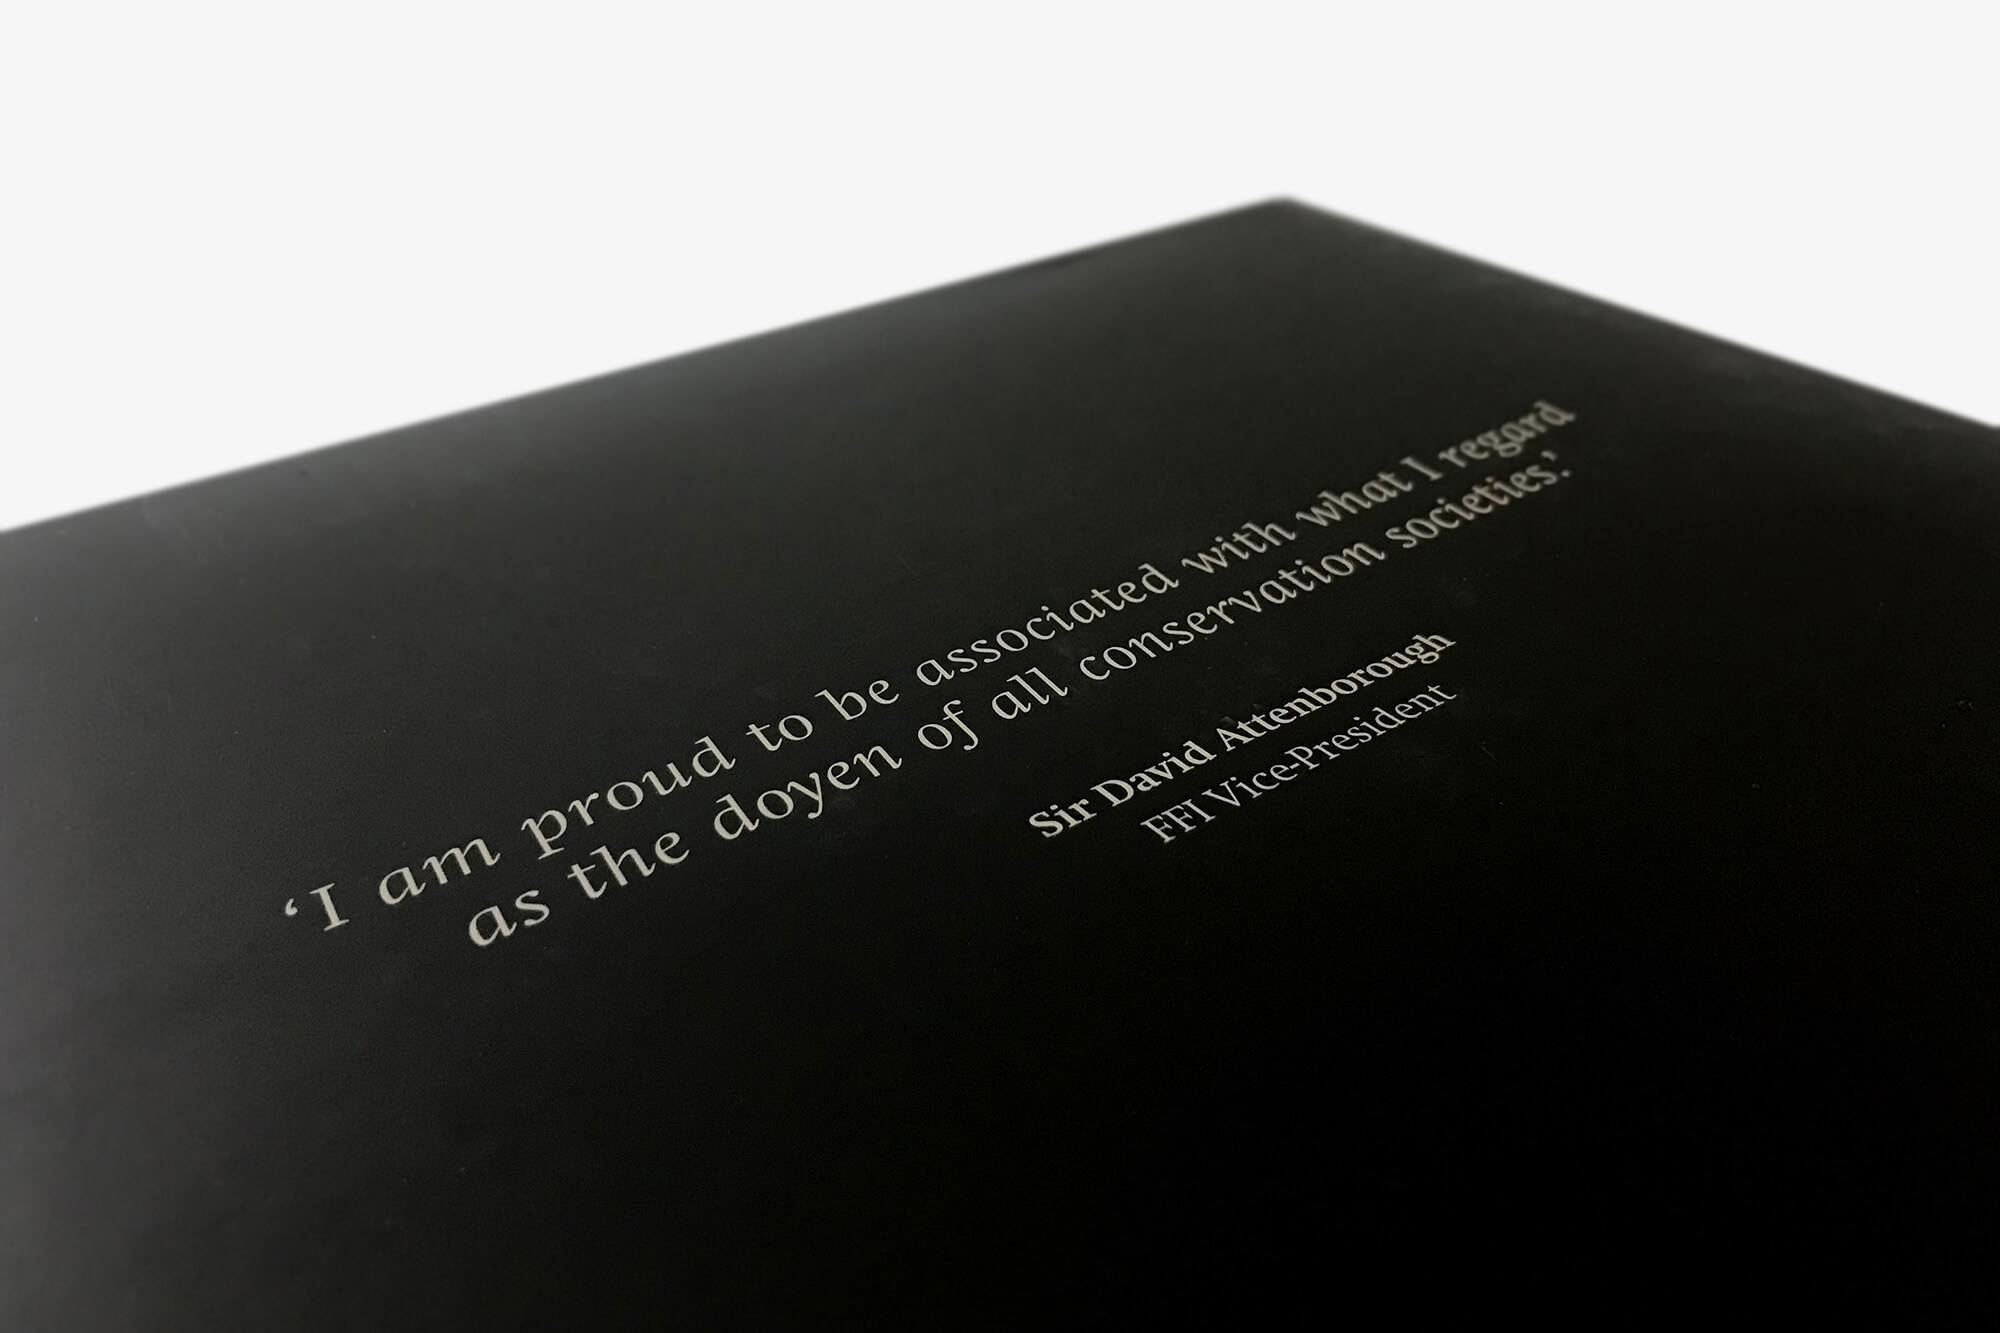 Back cover quote